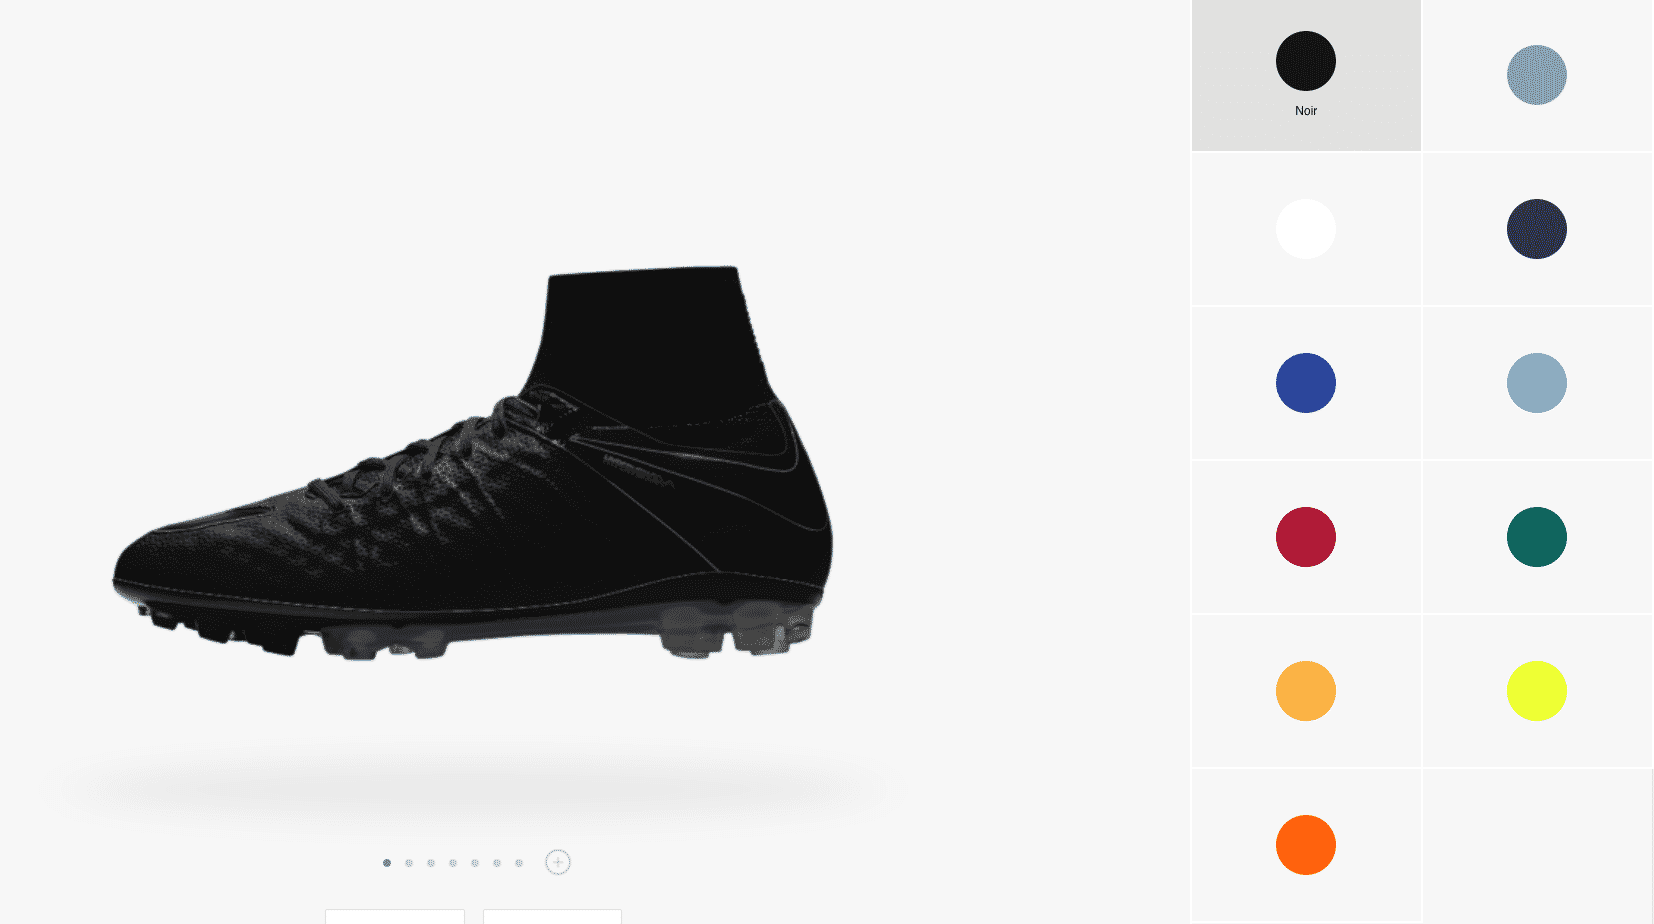 chaussure-football-nike-tech-craft-id-img16